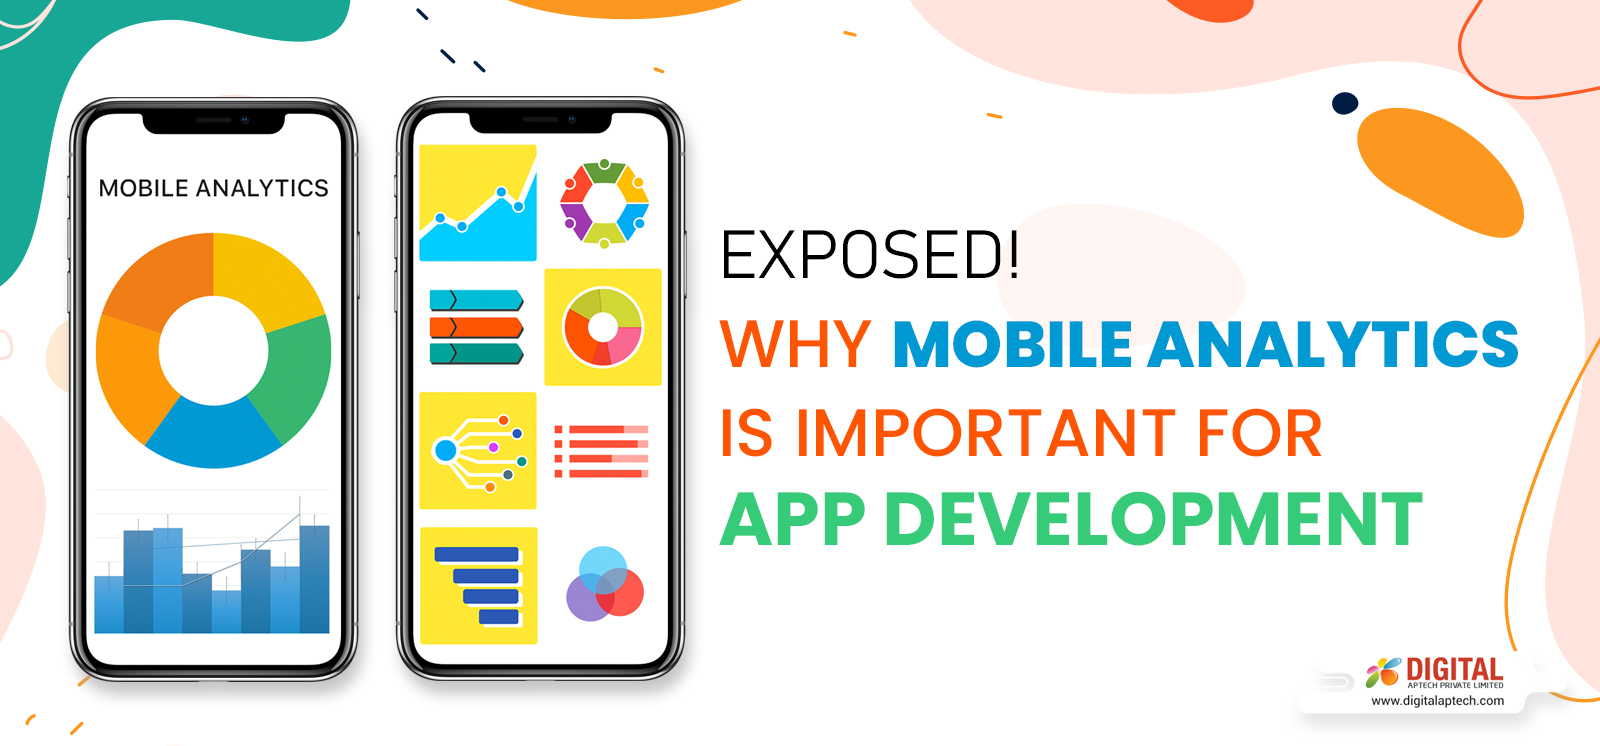 Why Mobile Analytics is Important for App Development